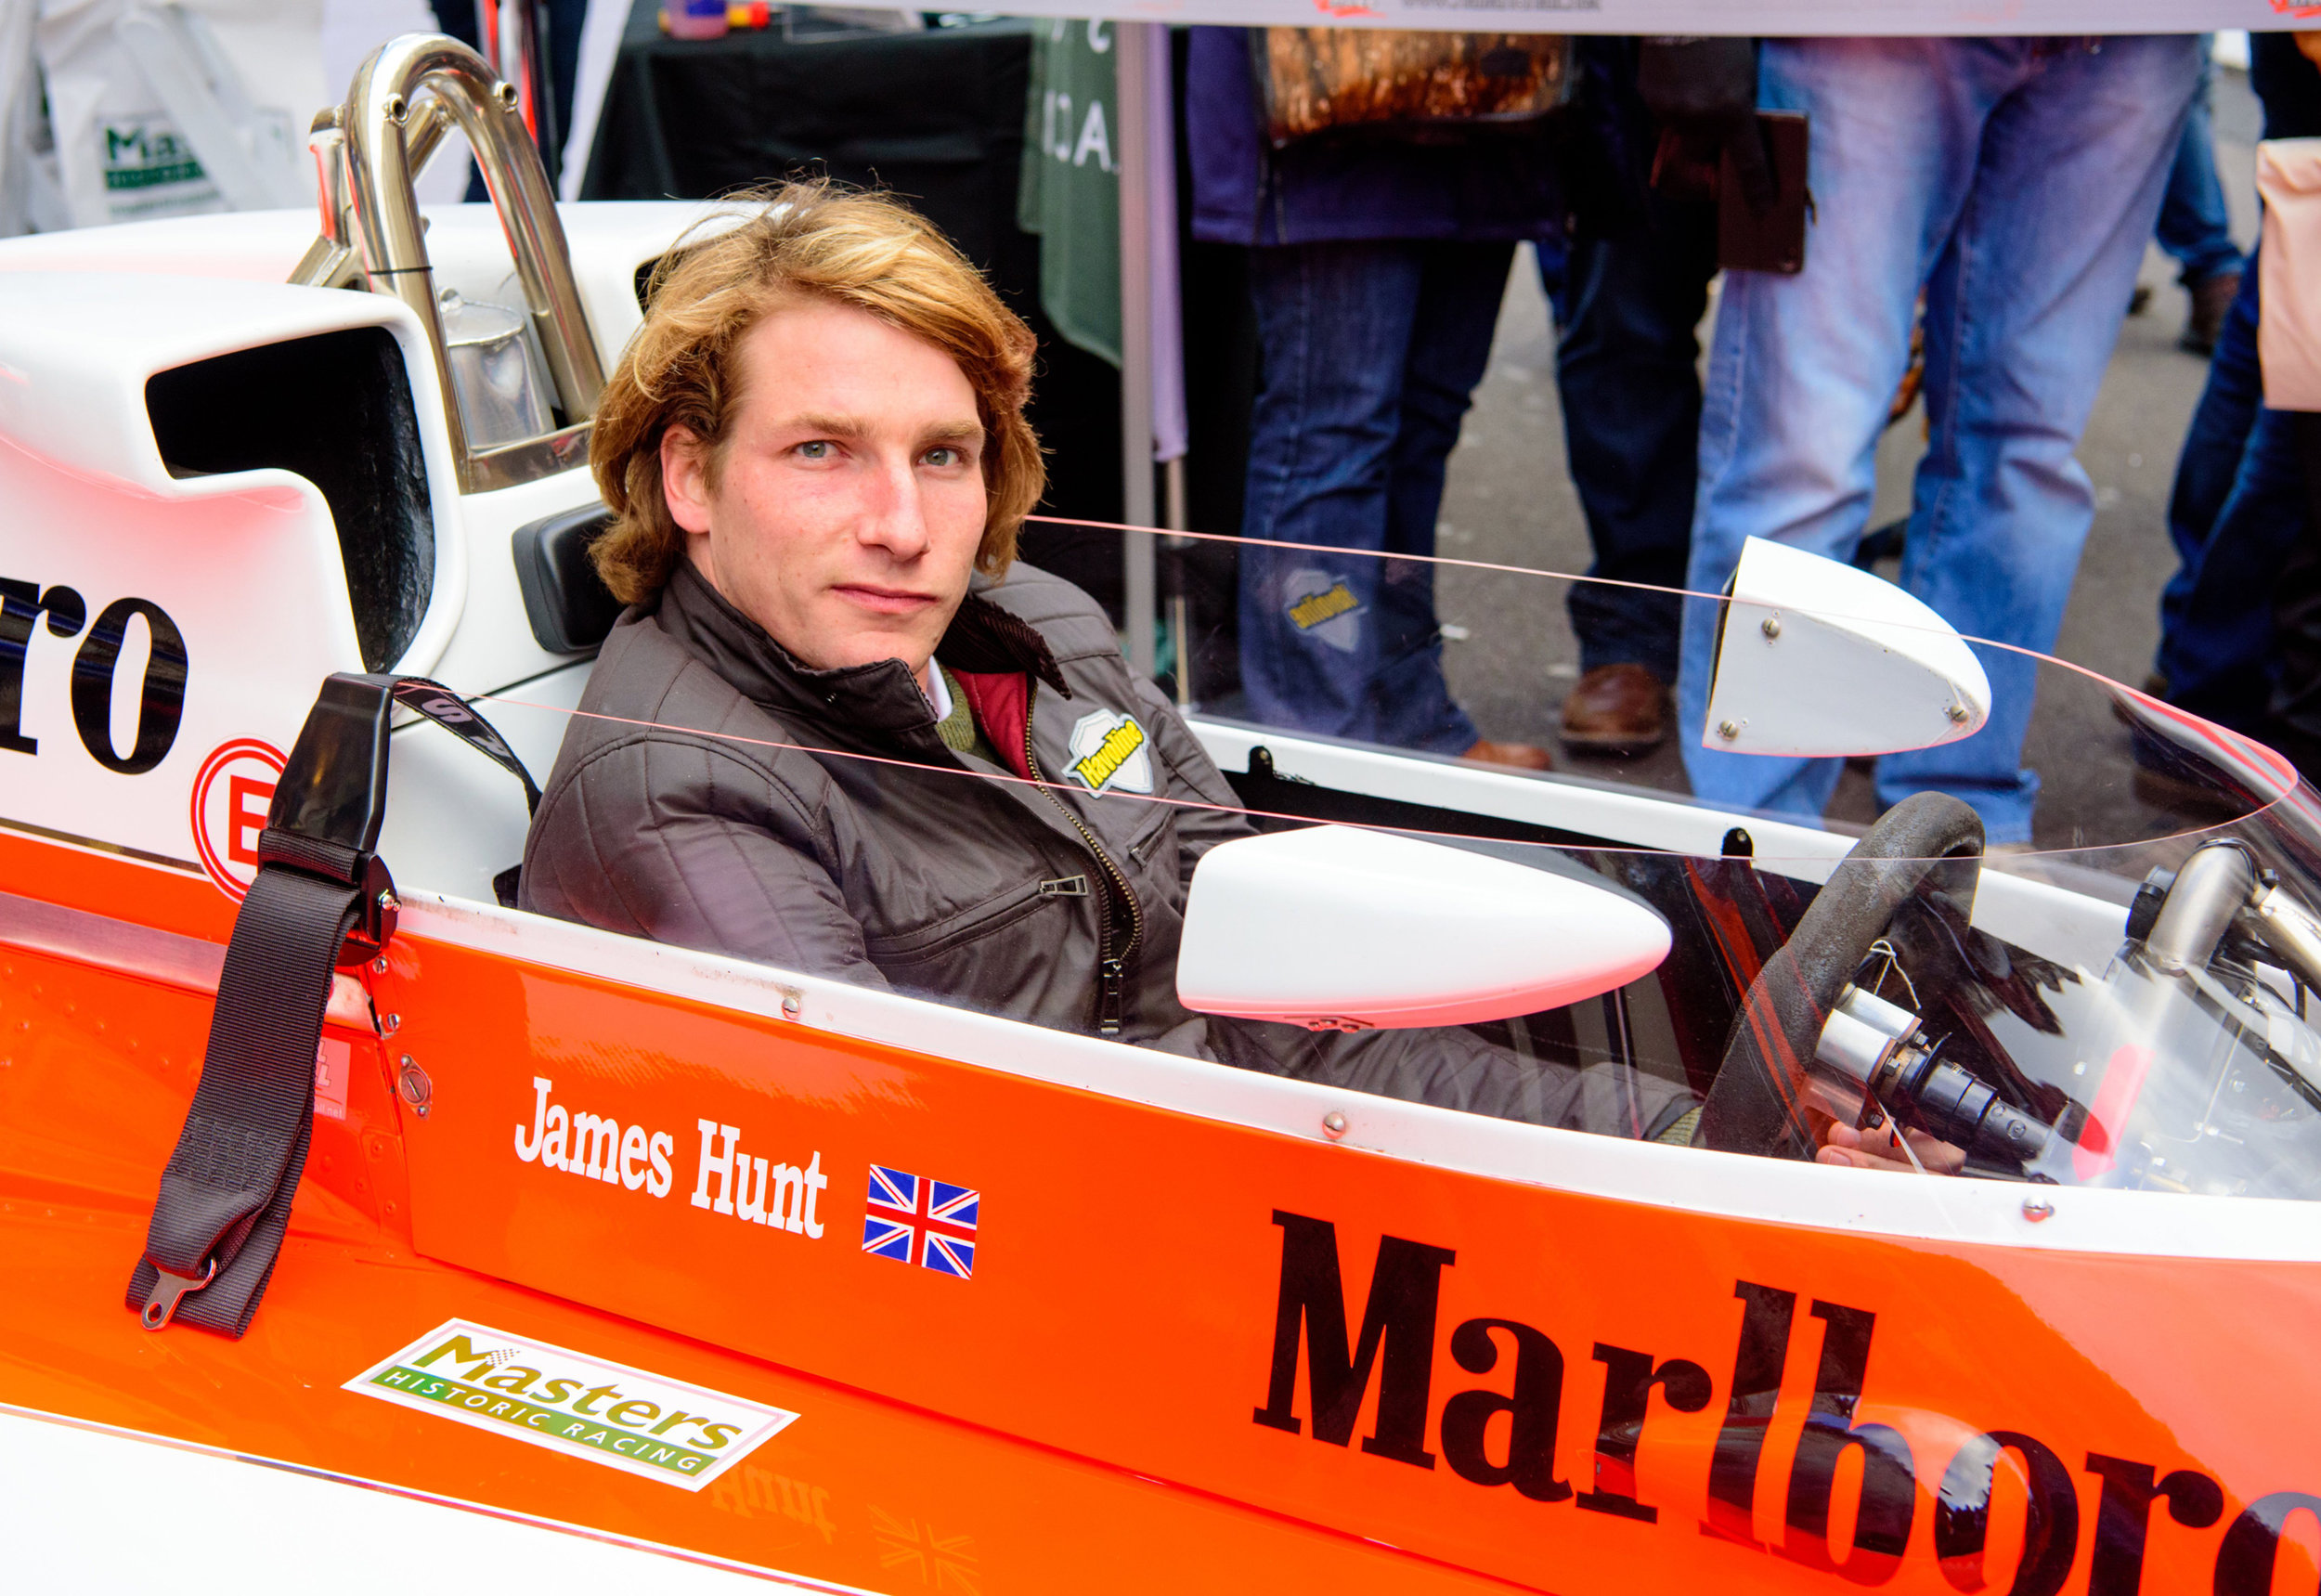 Freddie-Hunt-in-his-father's-title-winning-McLaren-at-the-Regent-Street-Motor-Show.jpg